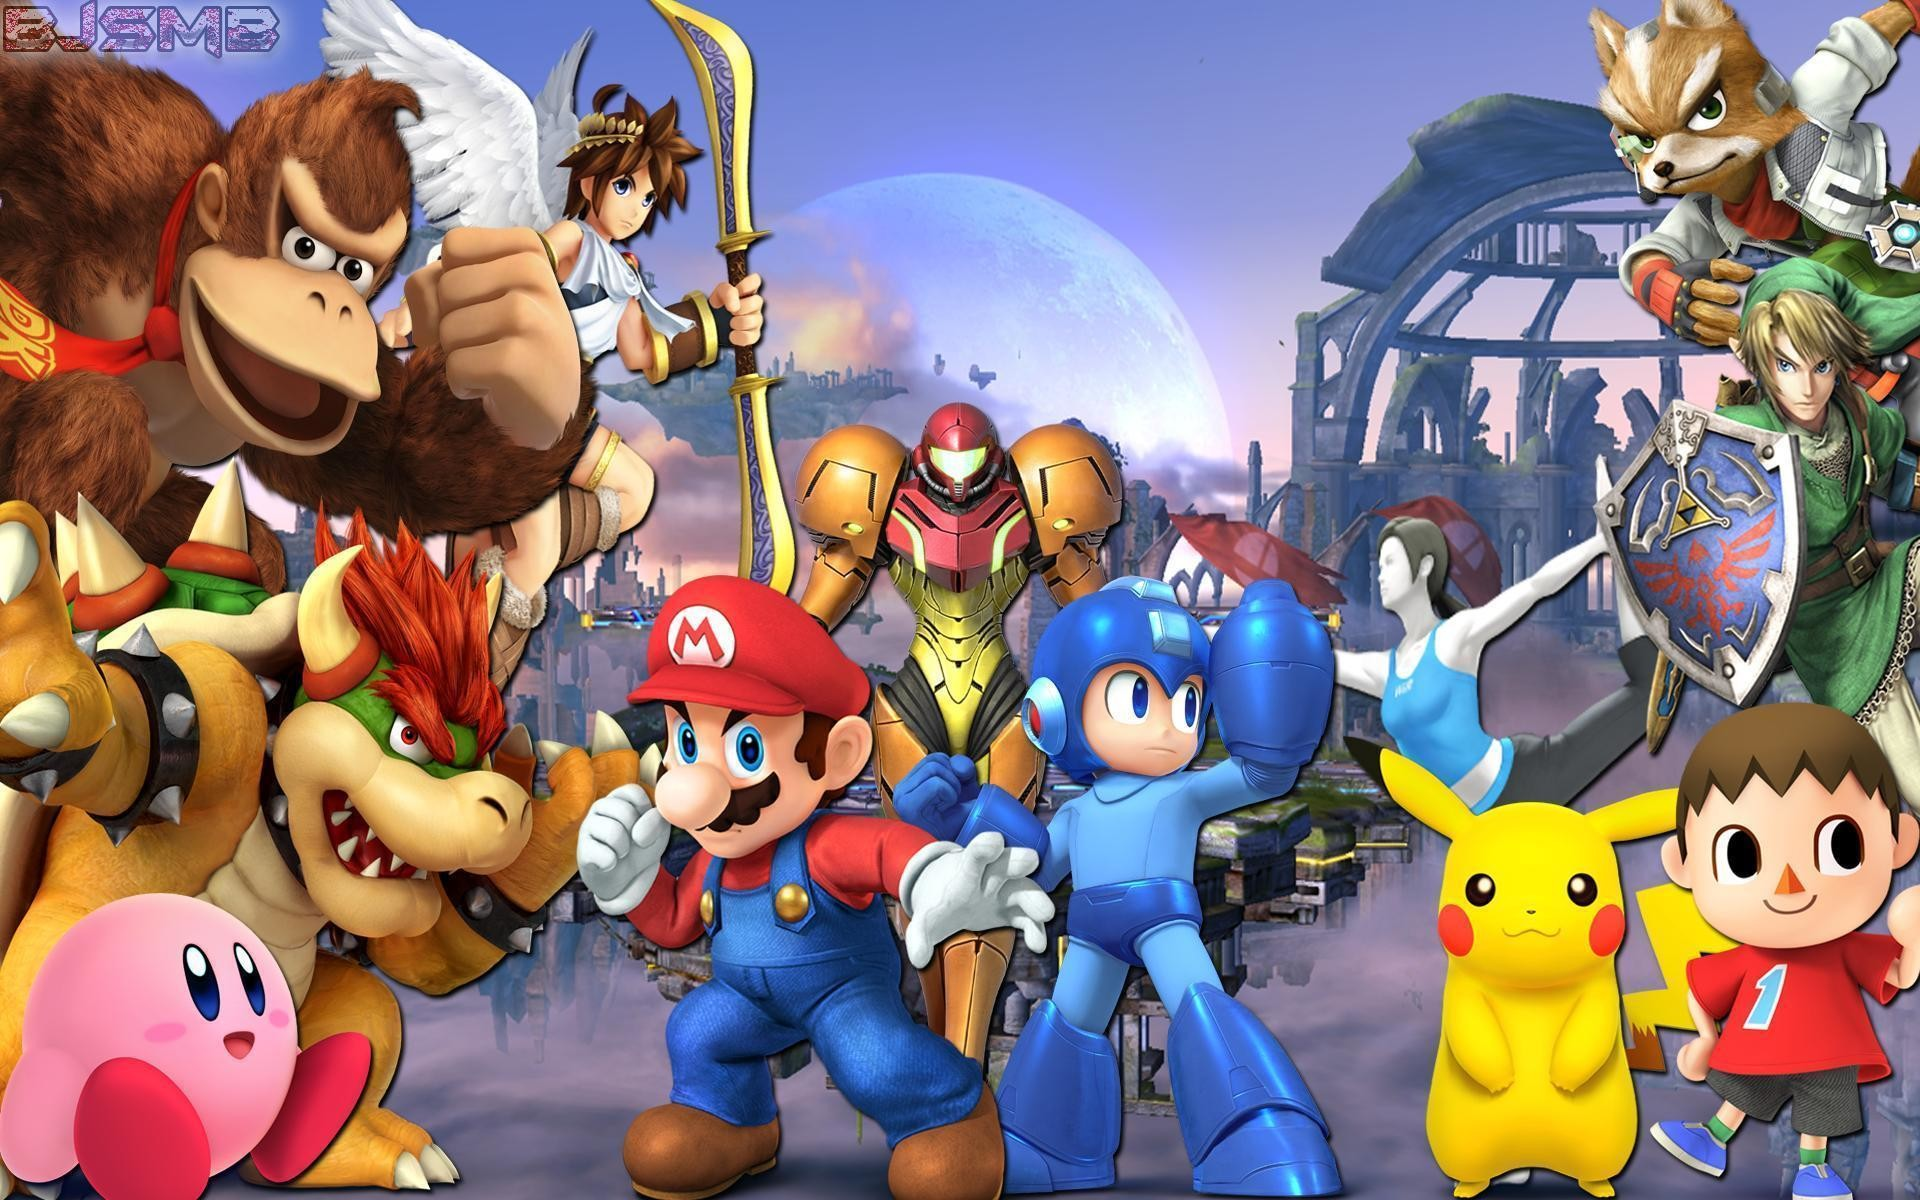 Super Smash Bros 4 Wallpapers Group with 76 items